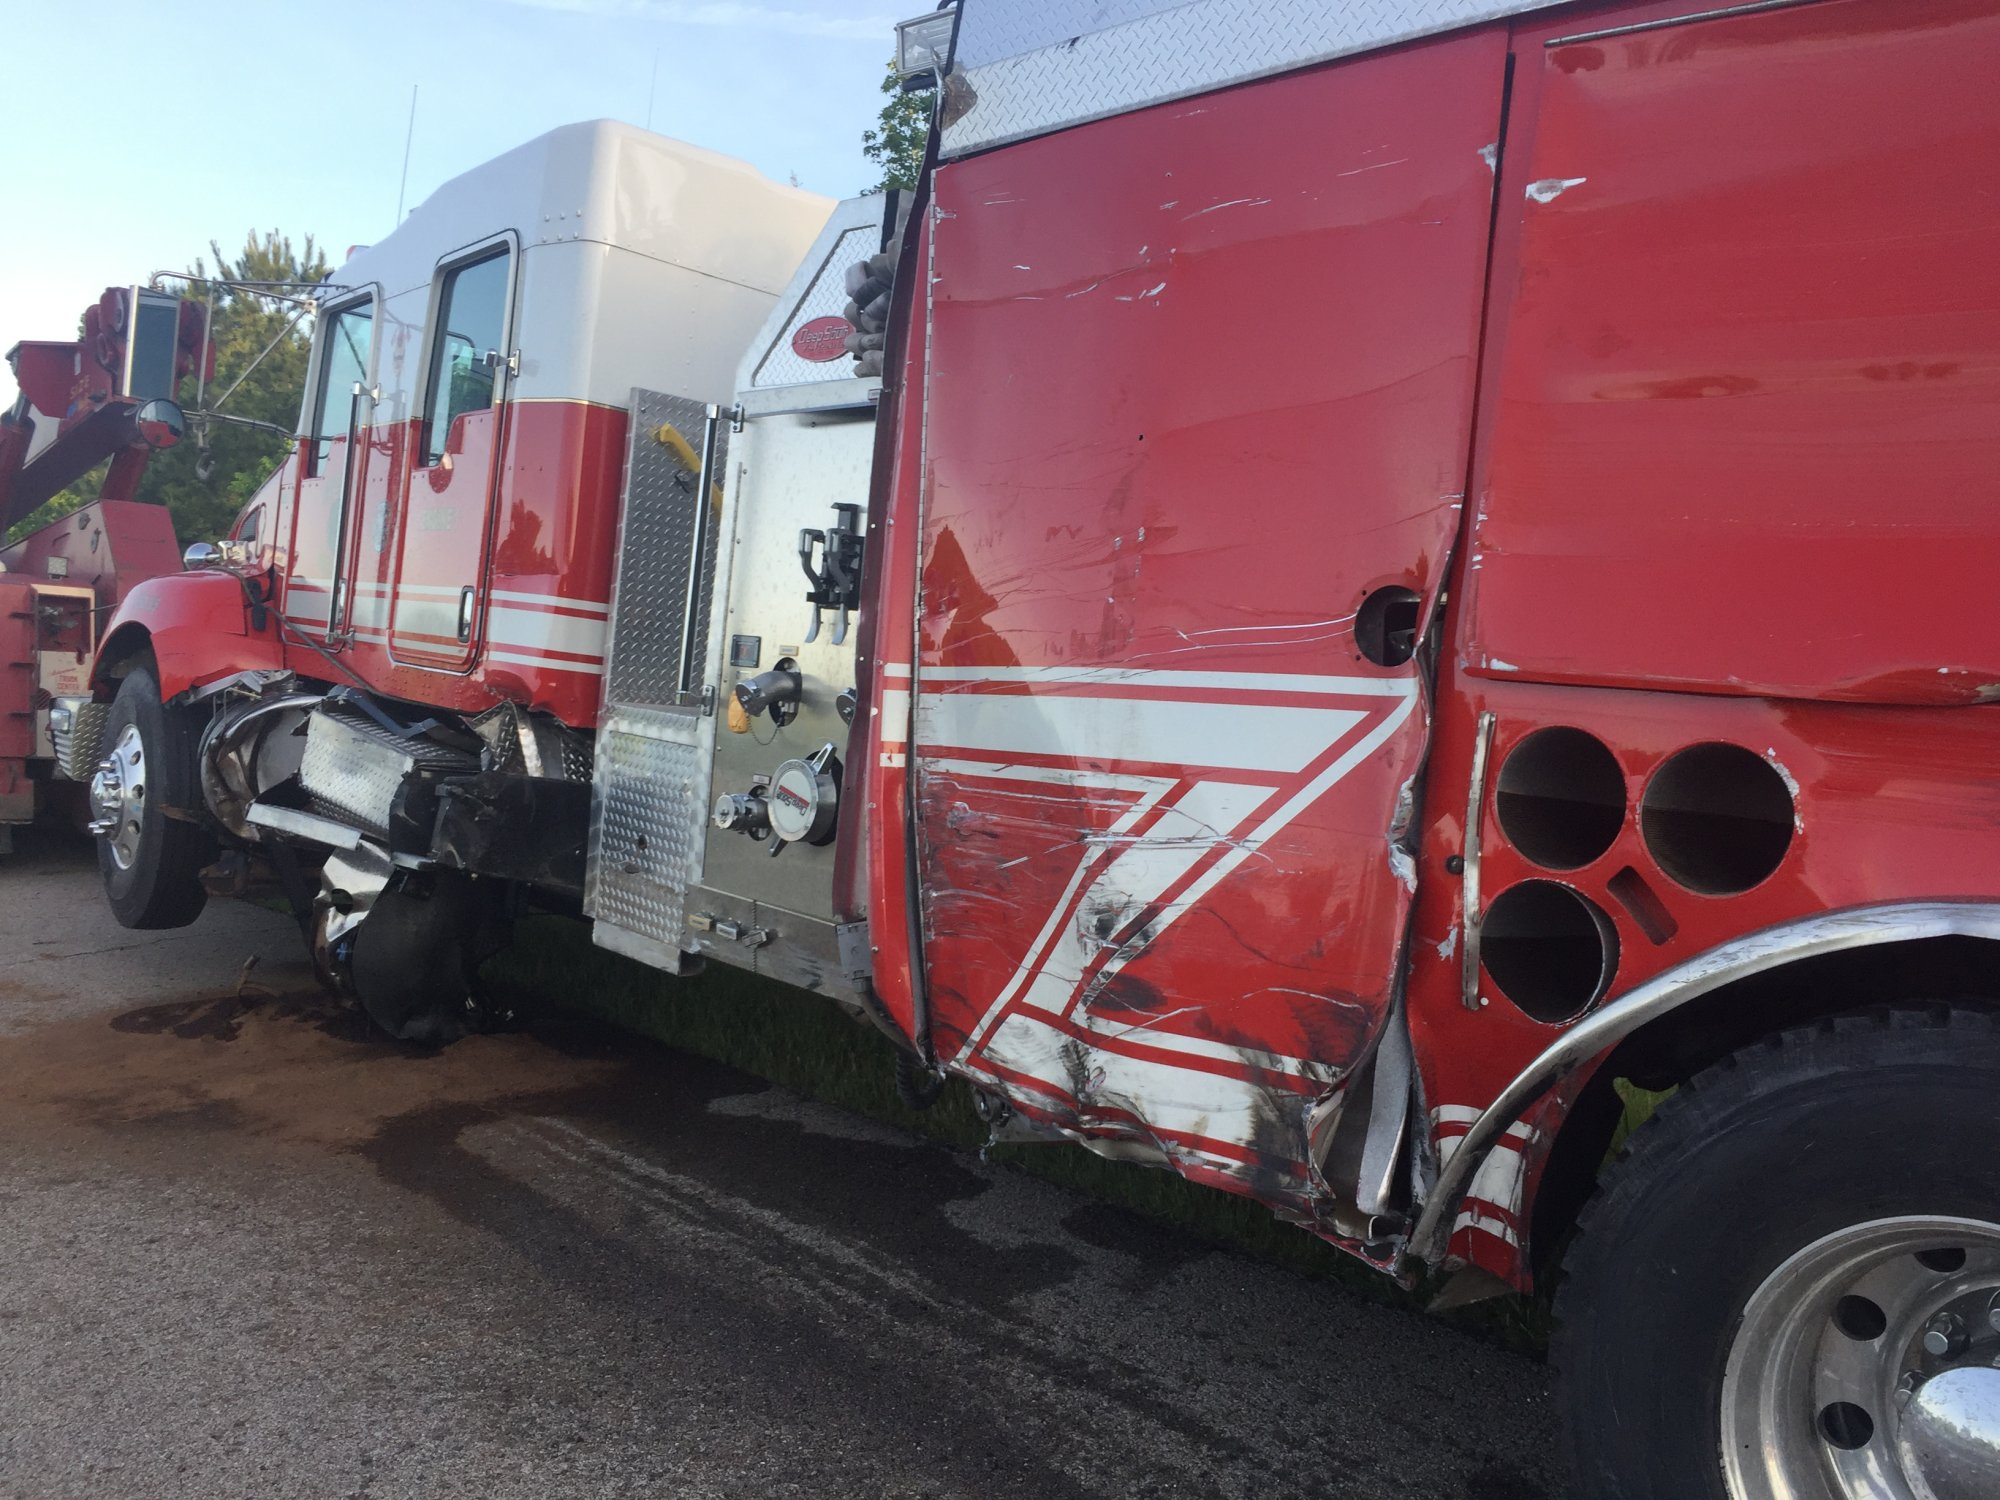 Mulberry Fire Truck Hit By Semi While Responding To Tractor-Trailer